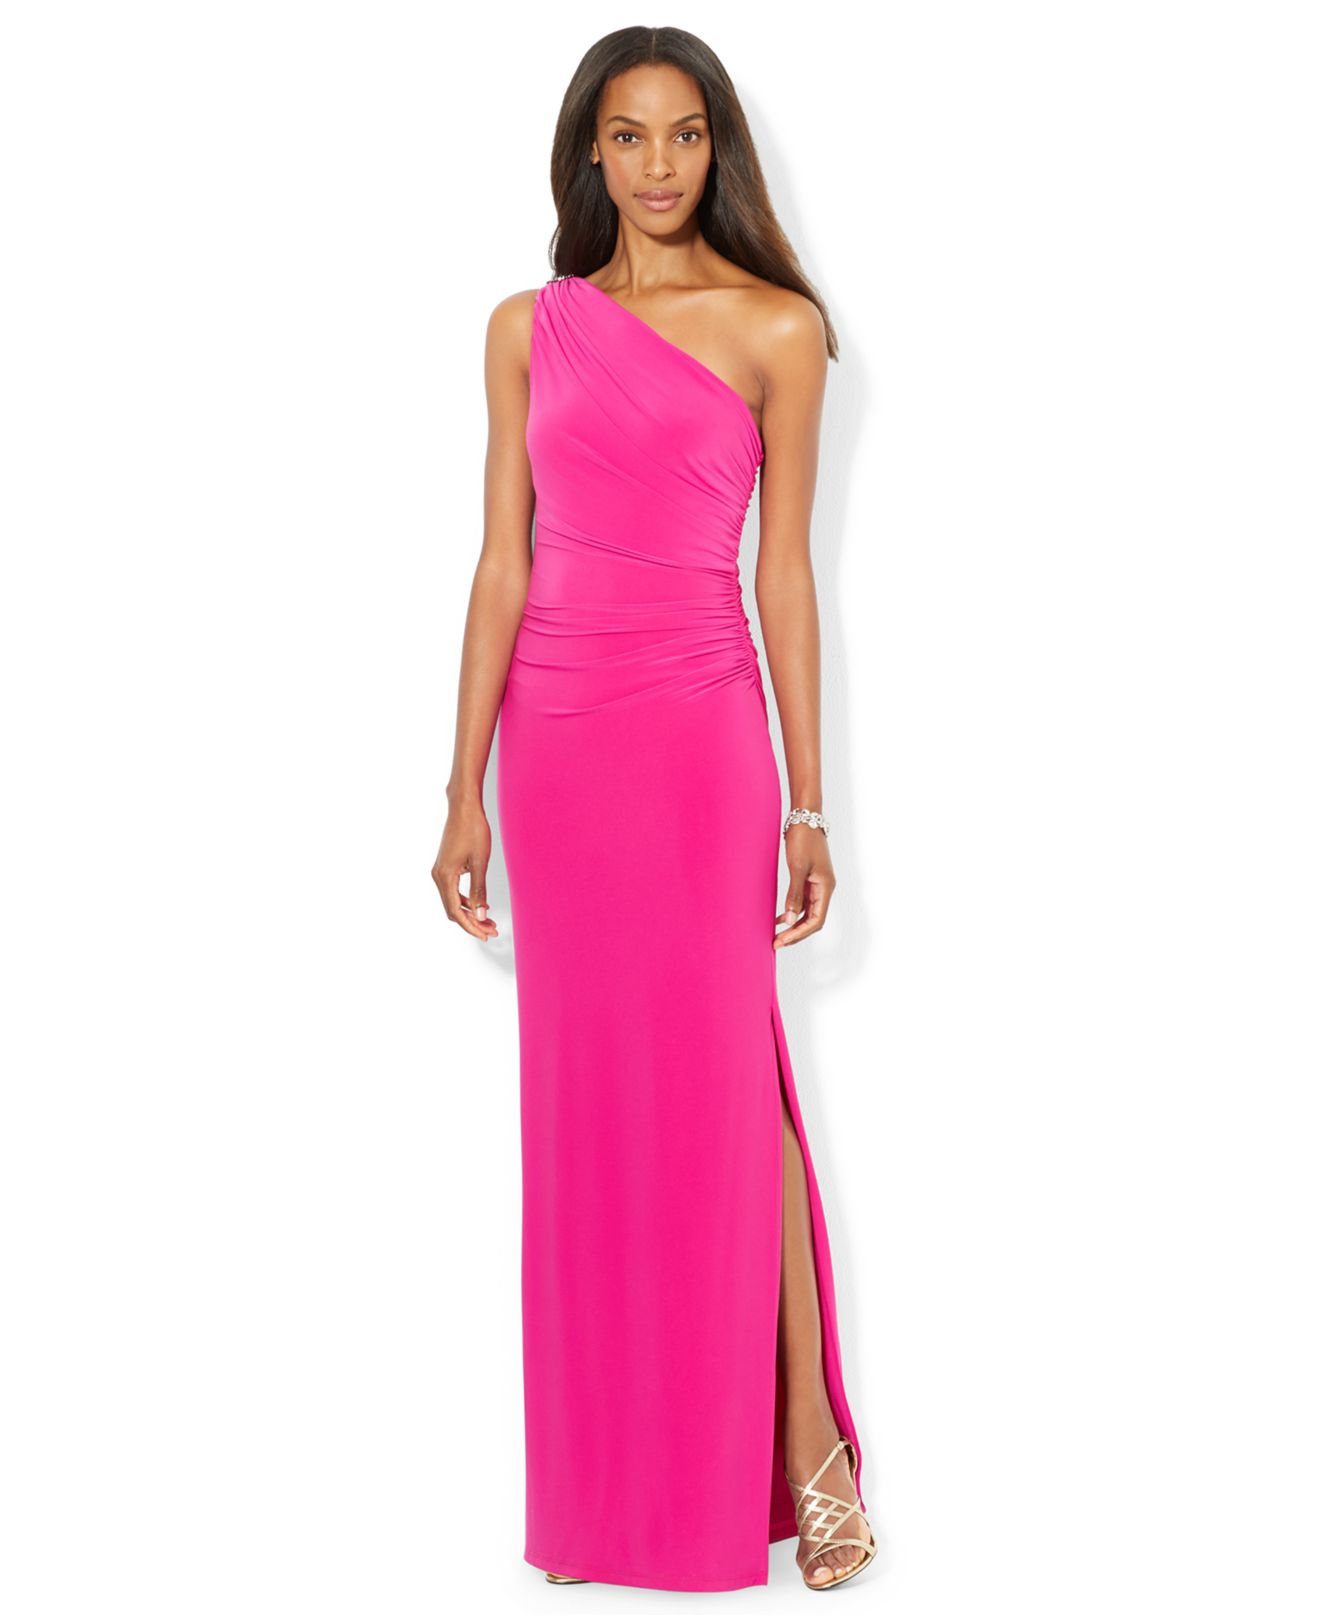 Lyst - Lauren By Ralph Lauren One-Shoulder Evening Gown in Pink